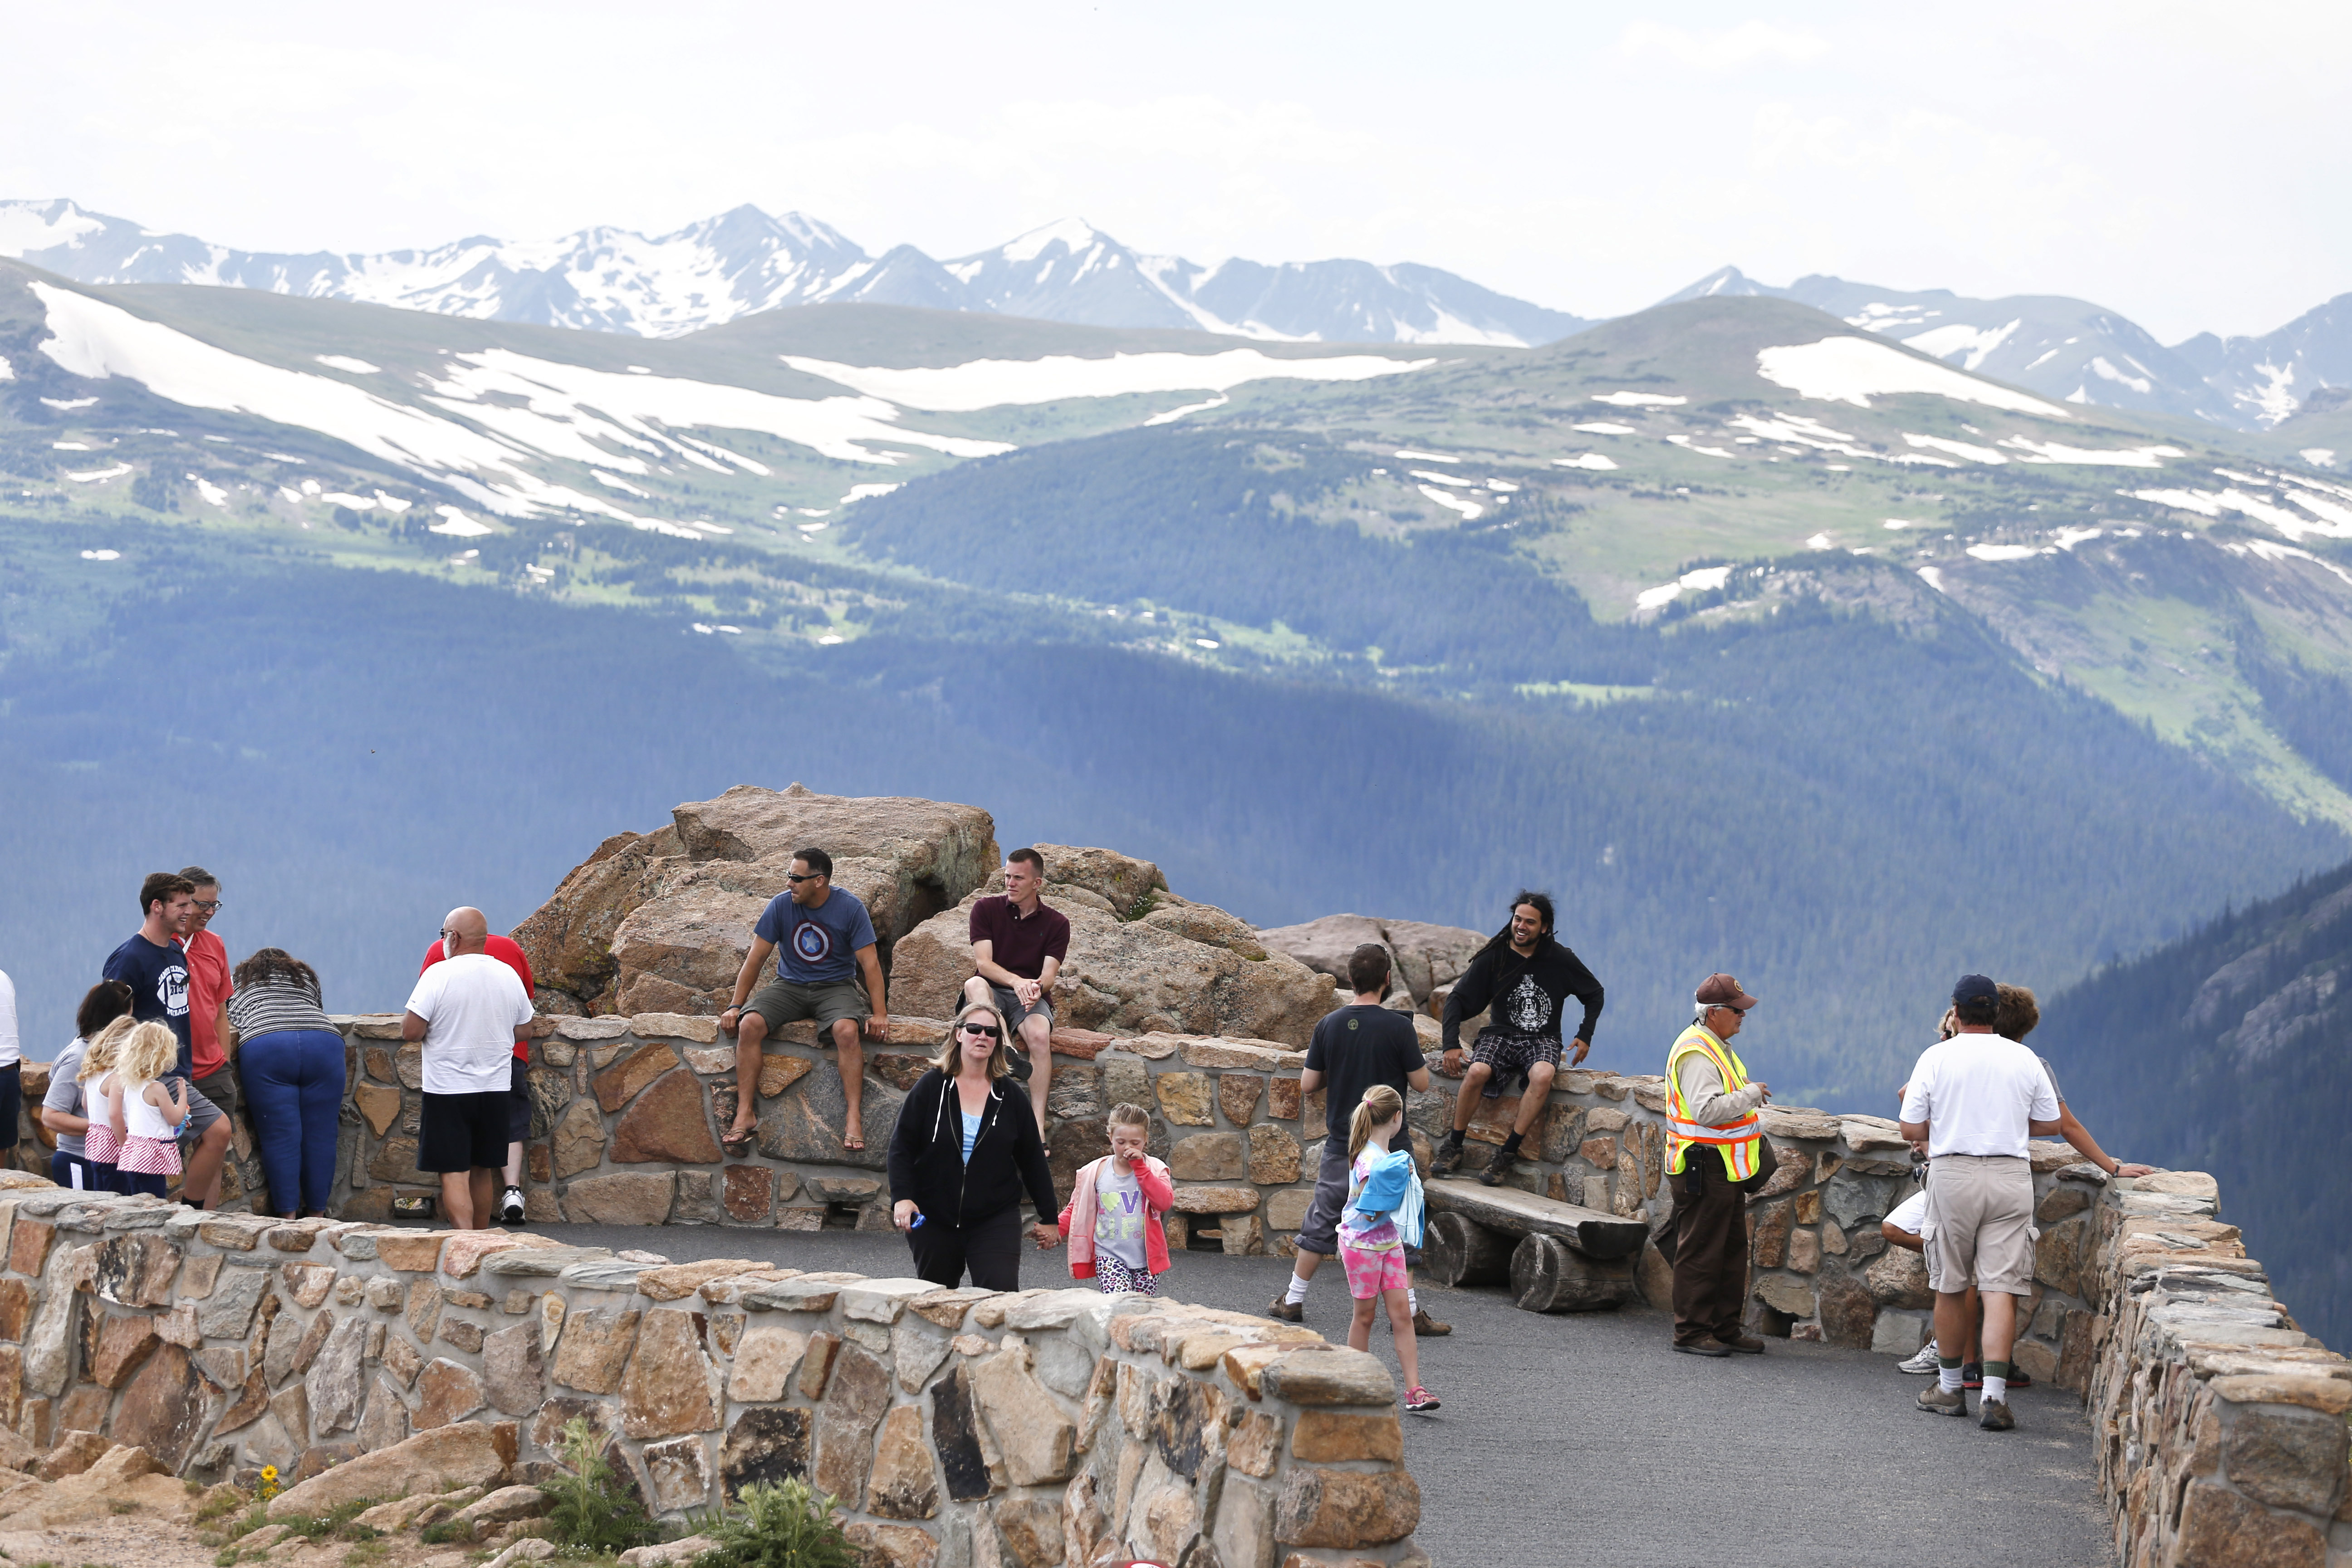 <p>Visitors take in a scenic overlook off Trail Ridge Road, above tree-line at Rocky Mountain National Park, west of Estes Park, Colo., Monday, July 14, 2014.</p>